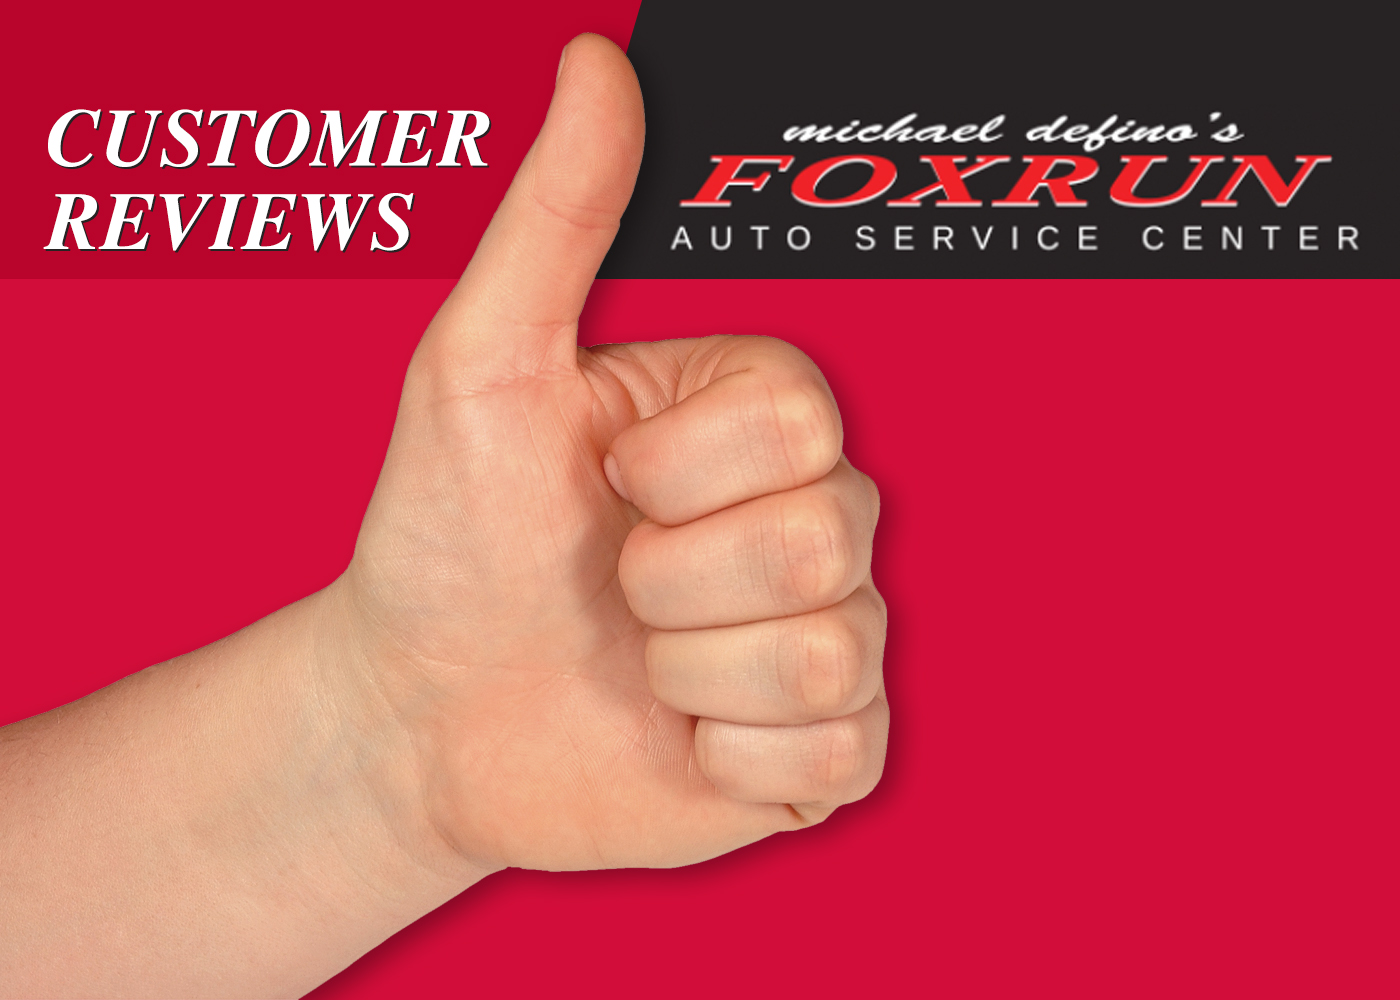 The Latest Customer Reviews of Fox Run Auto